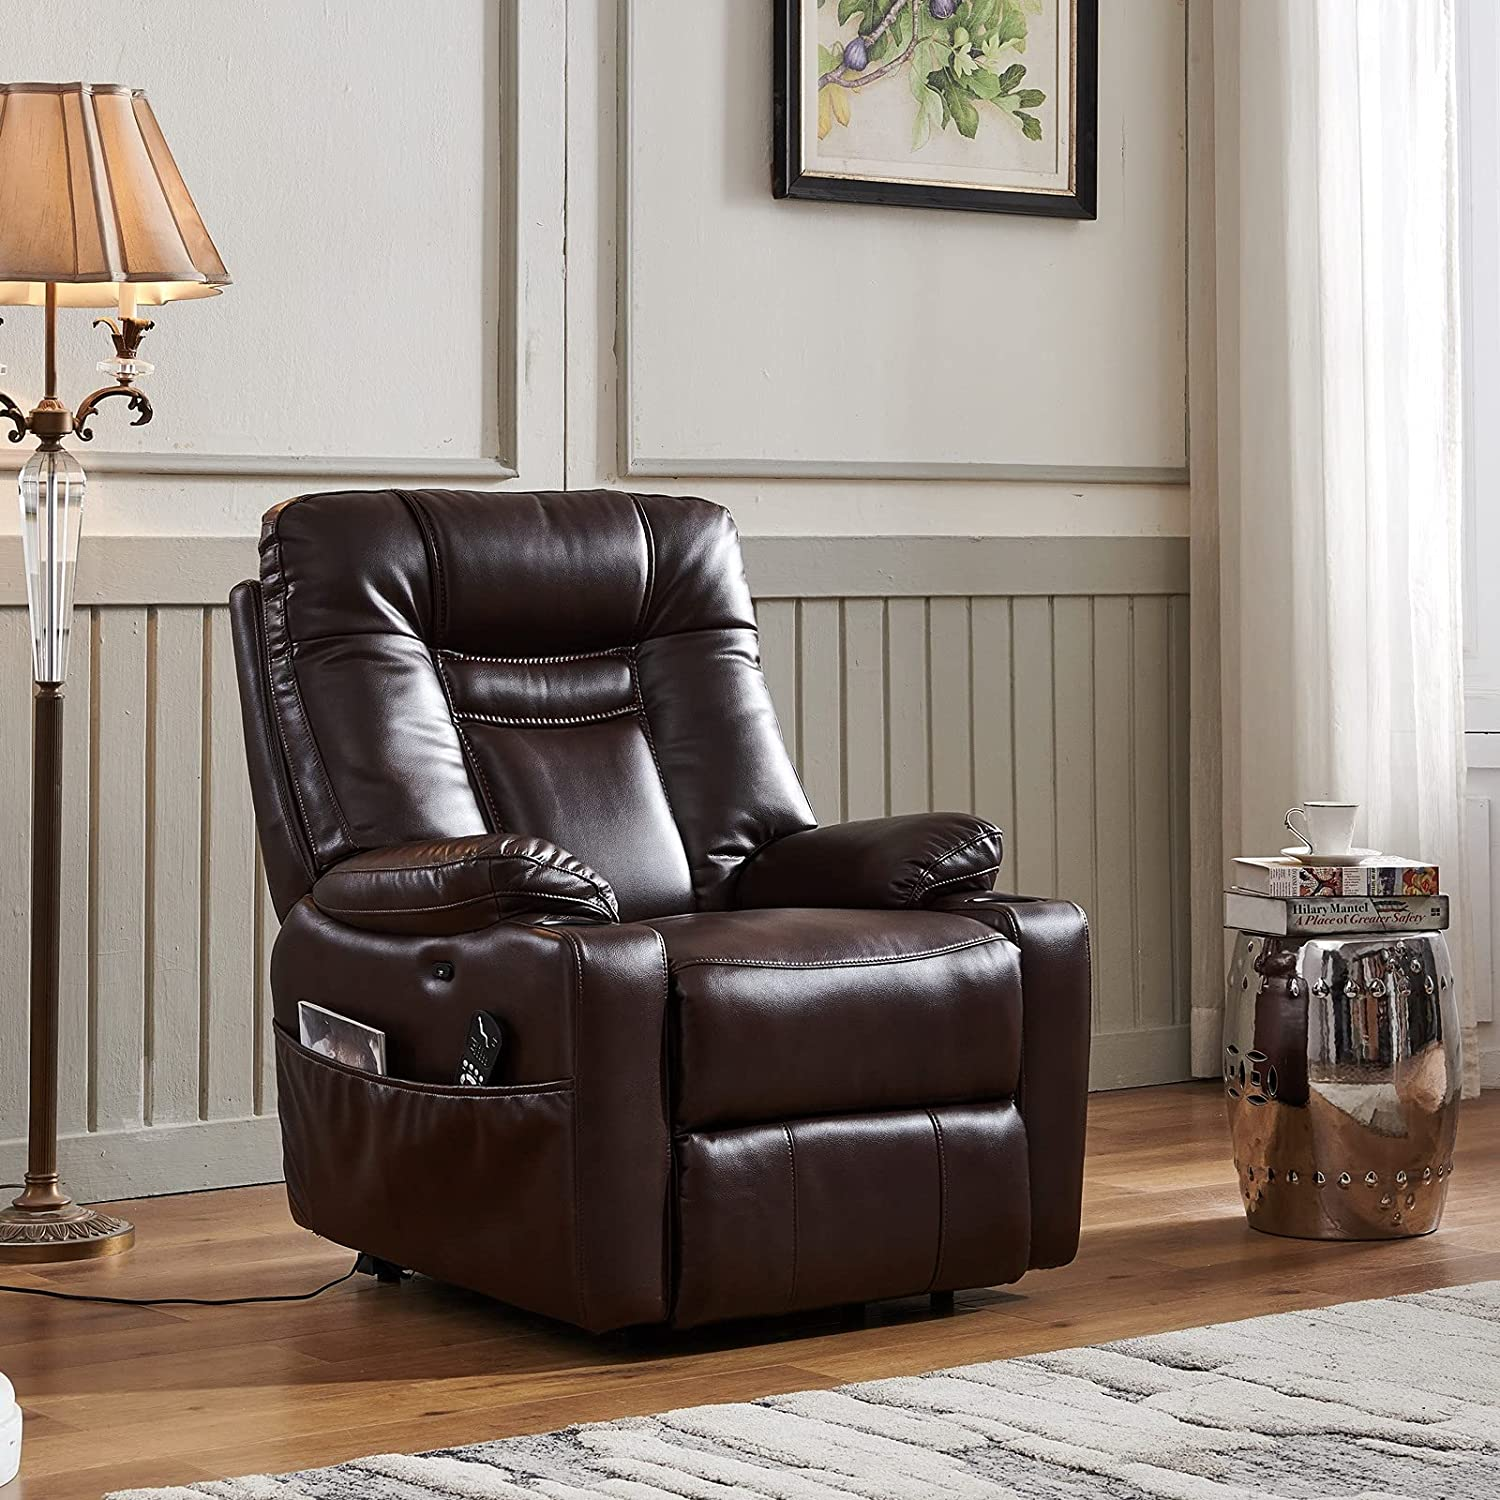 Alapaste Large Size Electric Power Lift Elder for Discount is Seattle Mall also underway Chair Recliner